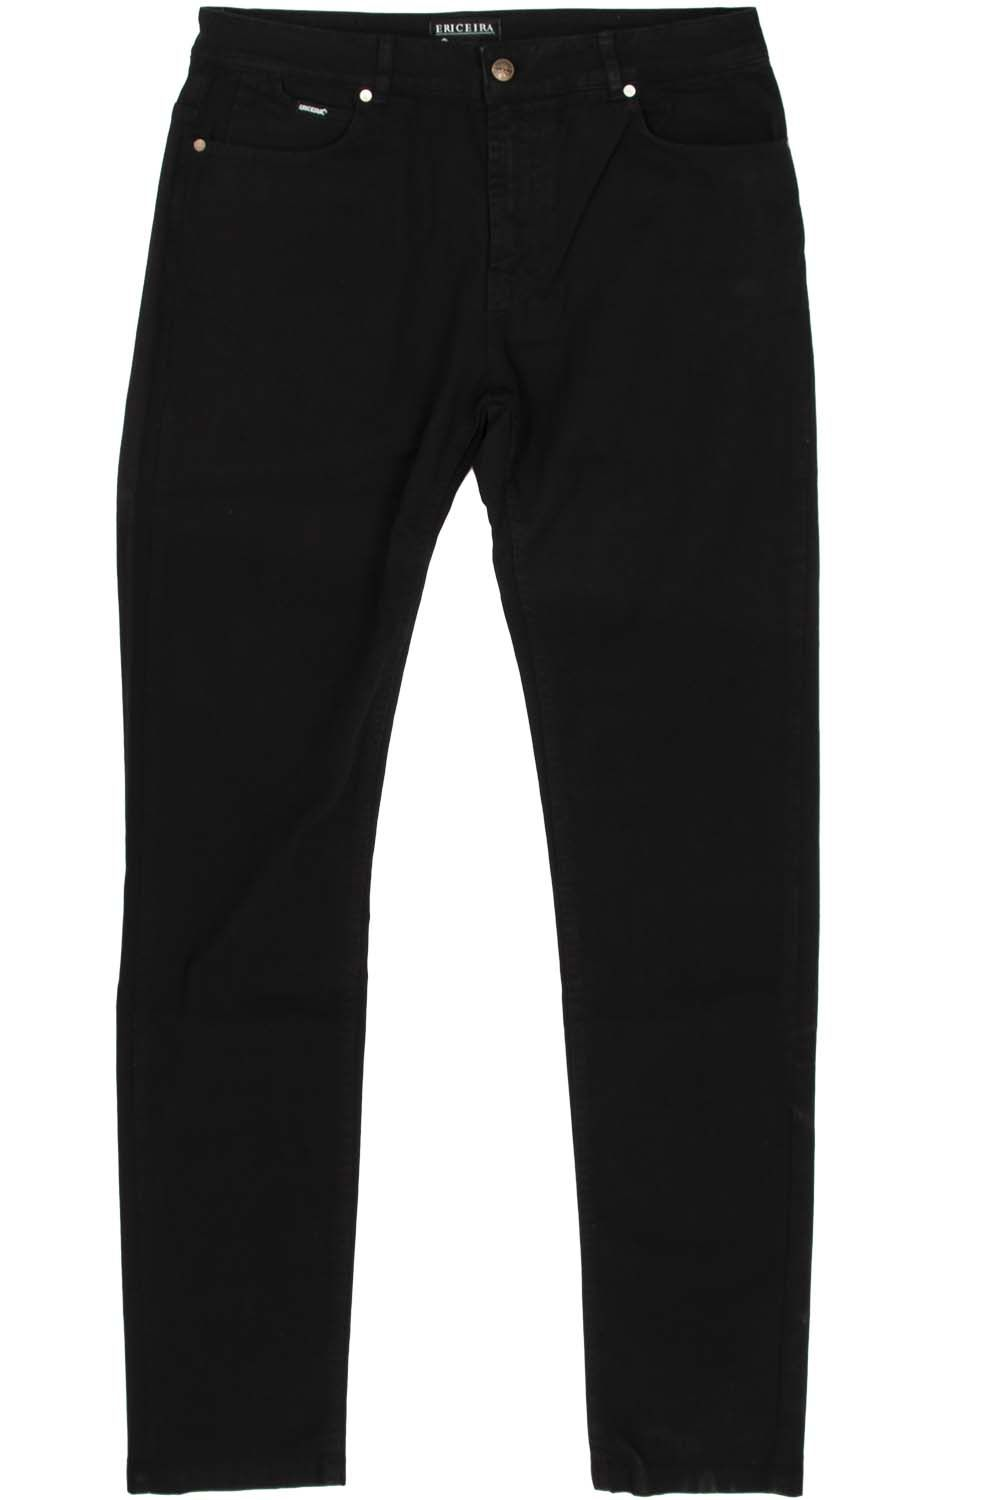 Ericeira Surf Skate Pant Jeans ROTTEN SKINNY Dk Charcoal